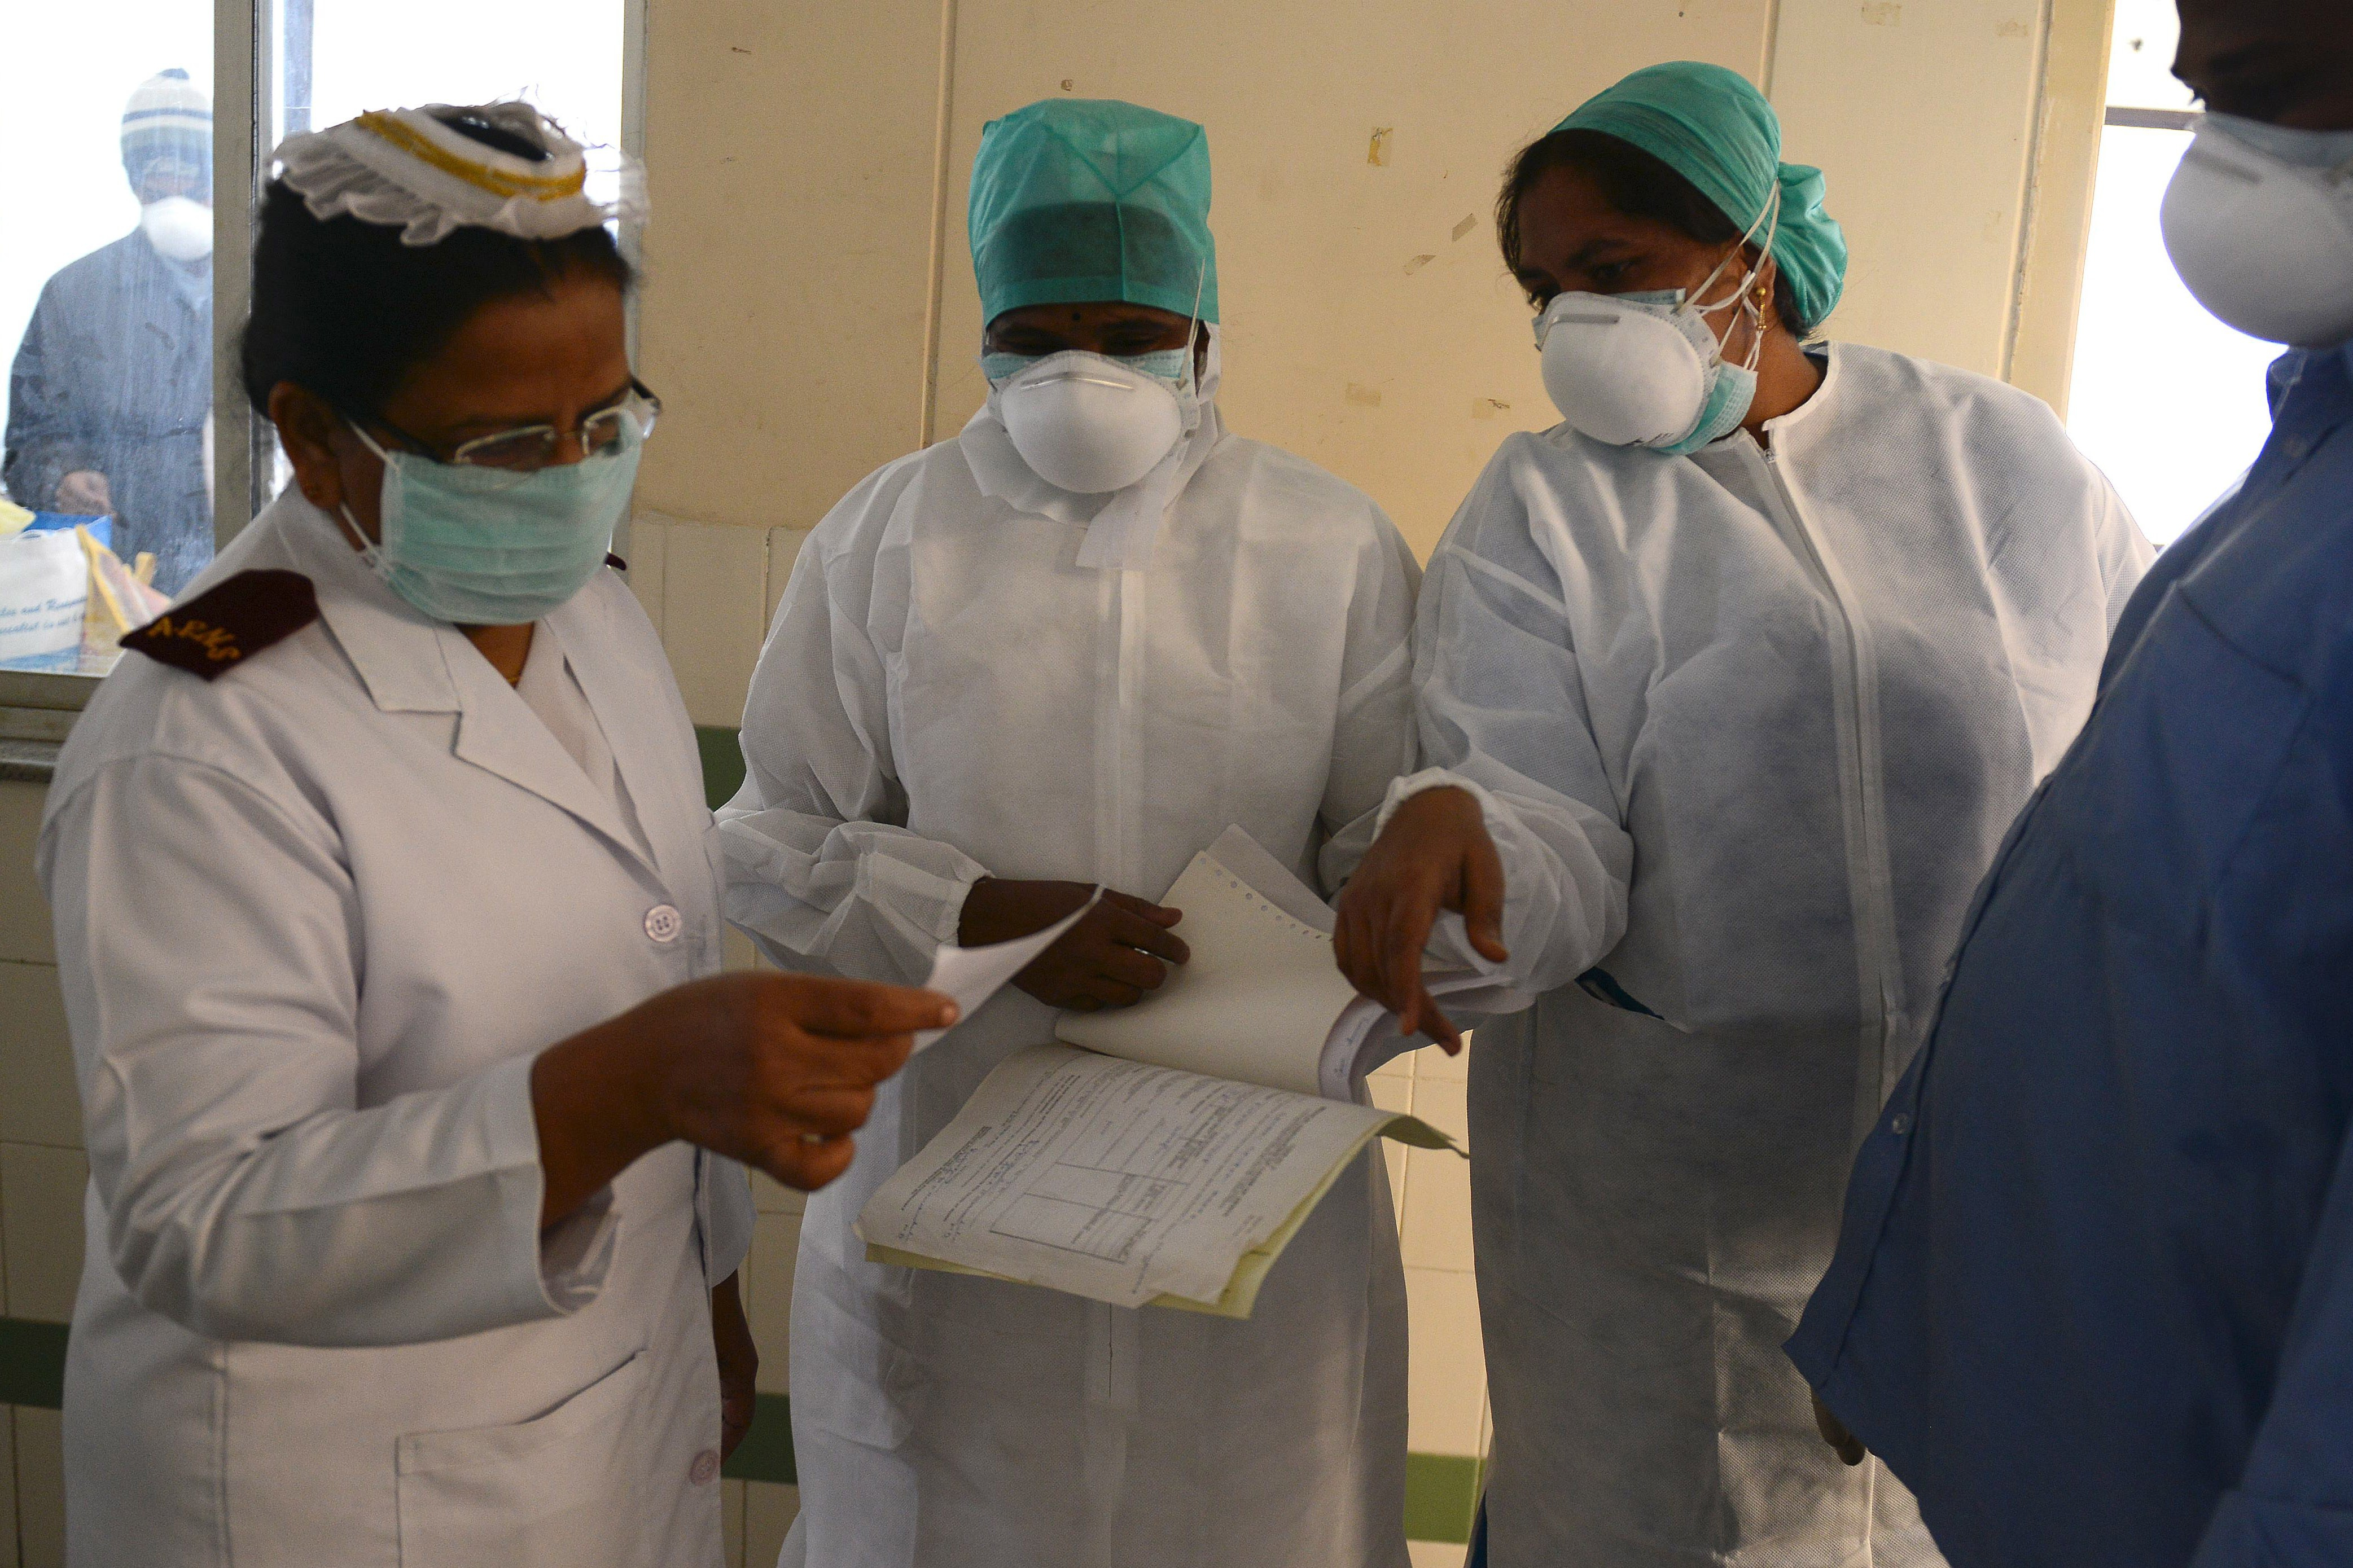 Indian health professionals inspect the case sheet of a swine flu patient at a ward at the Gandhi Hospital in Hyderabad on Jan. 21, 2015